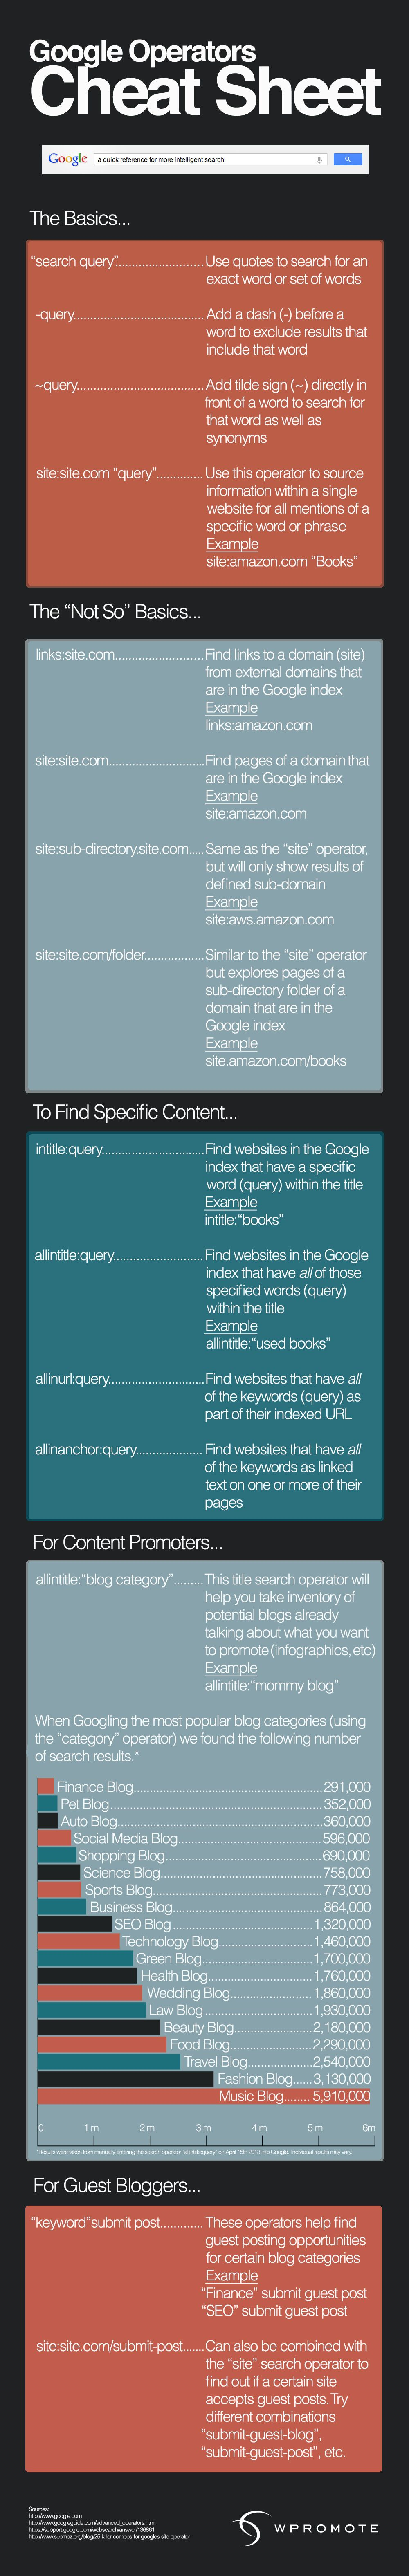 Use Google More Effectively: The Google Operators Guide - #infographic